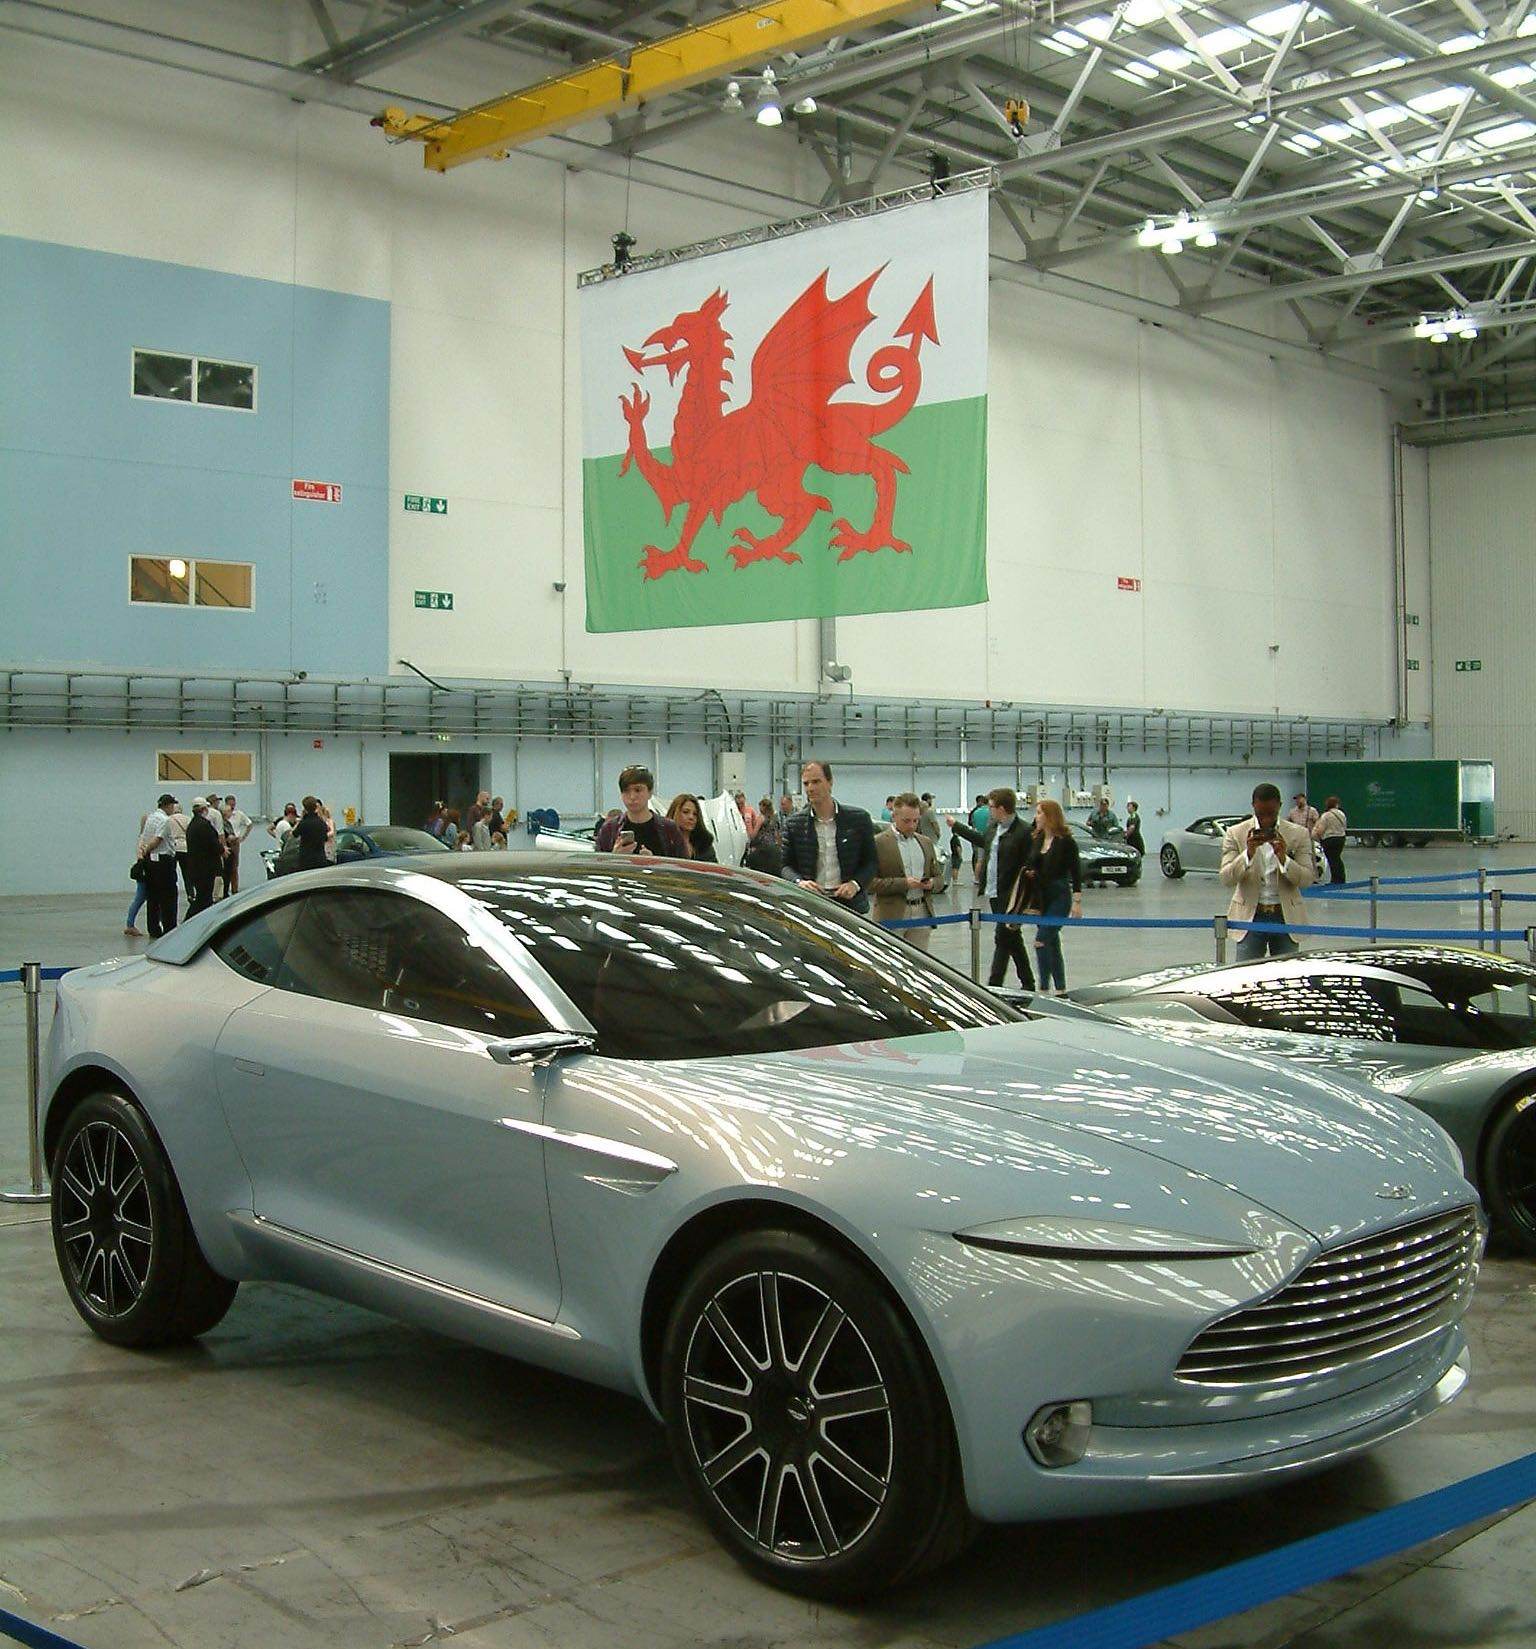 Aston Martin's New Car-building Facility In Wales Takes